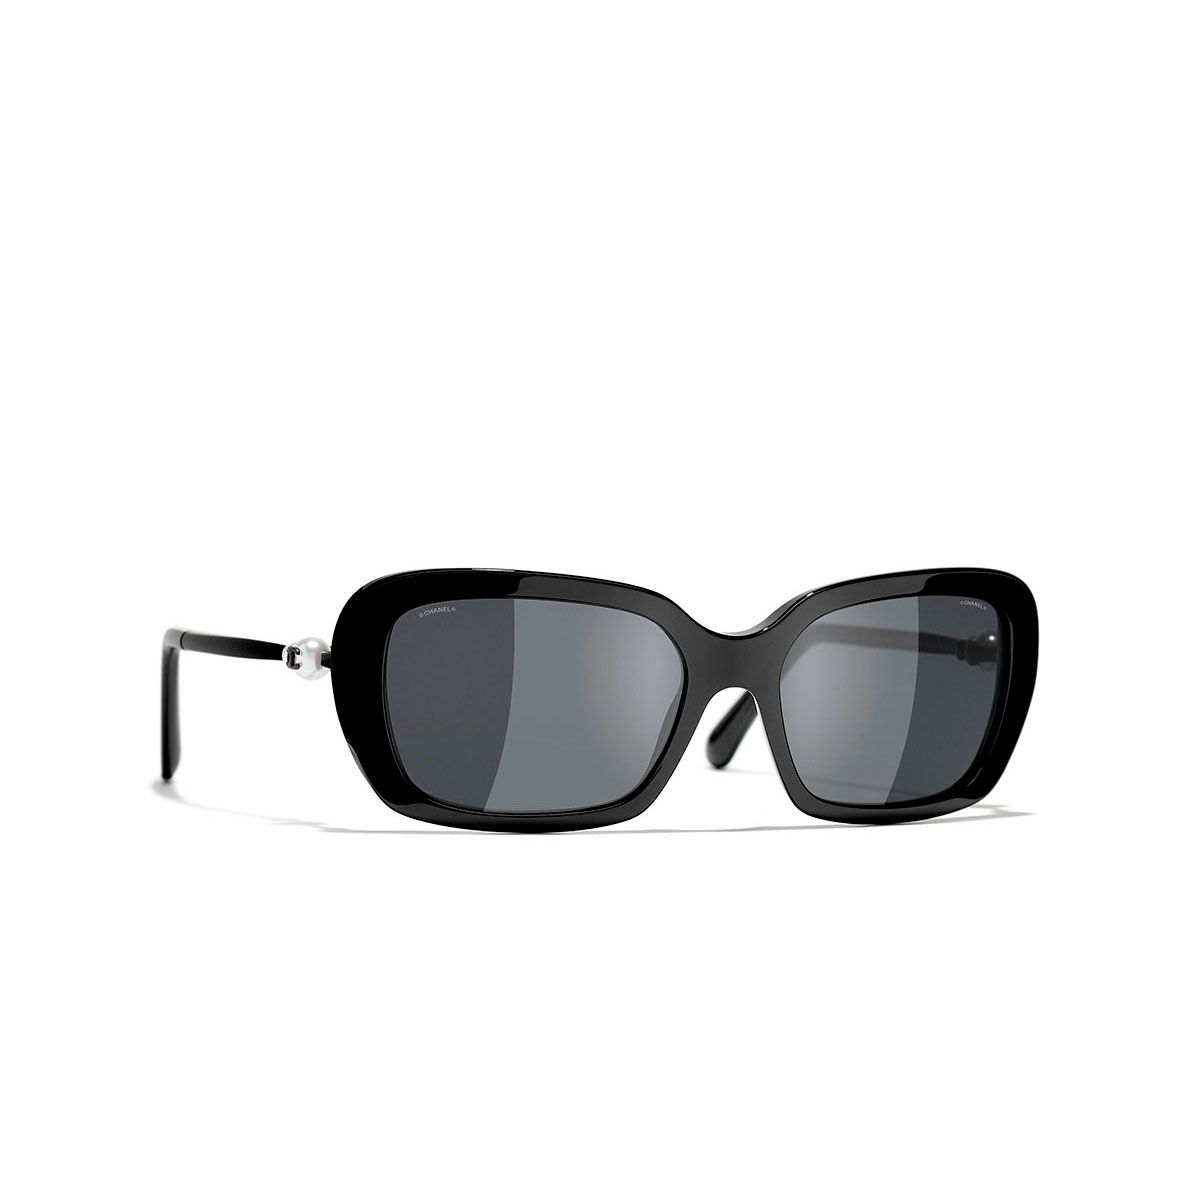 Square Sunglasses 330 Sunglasses